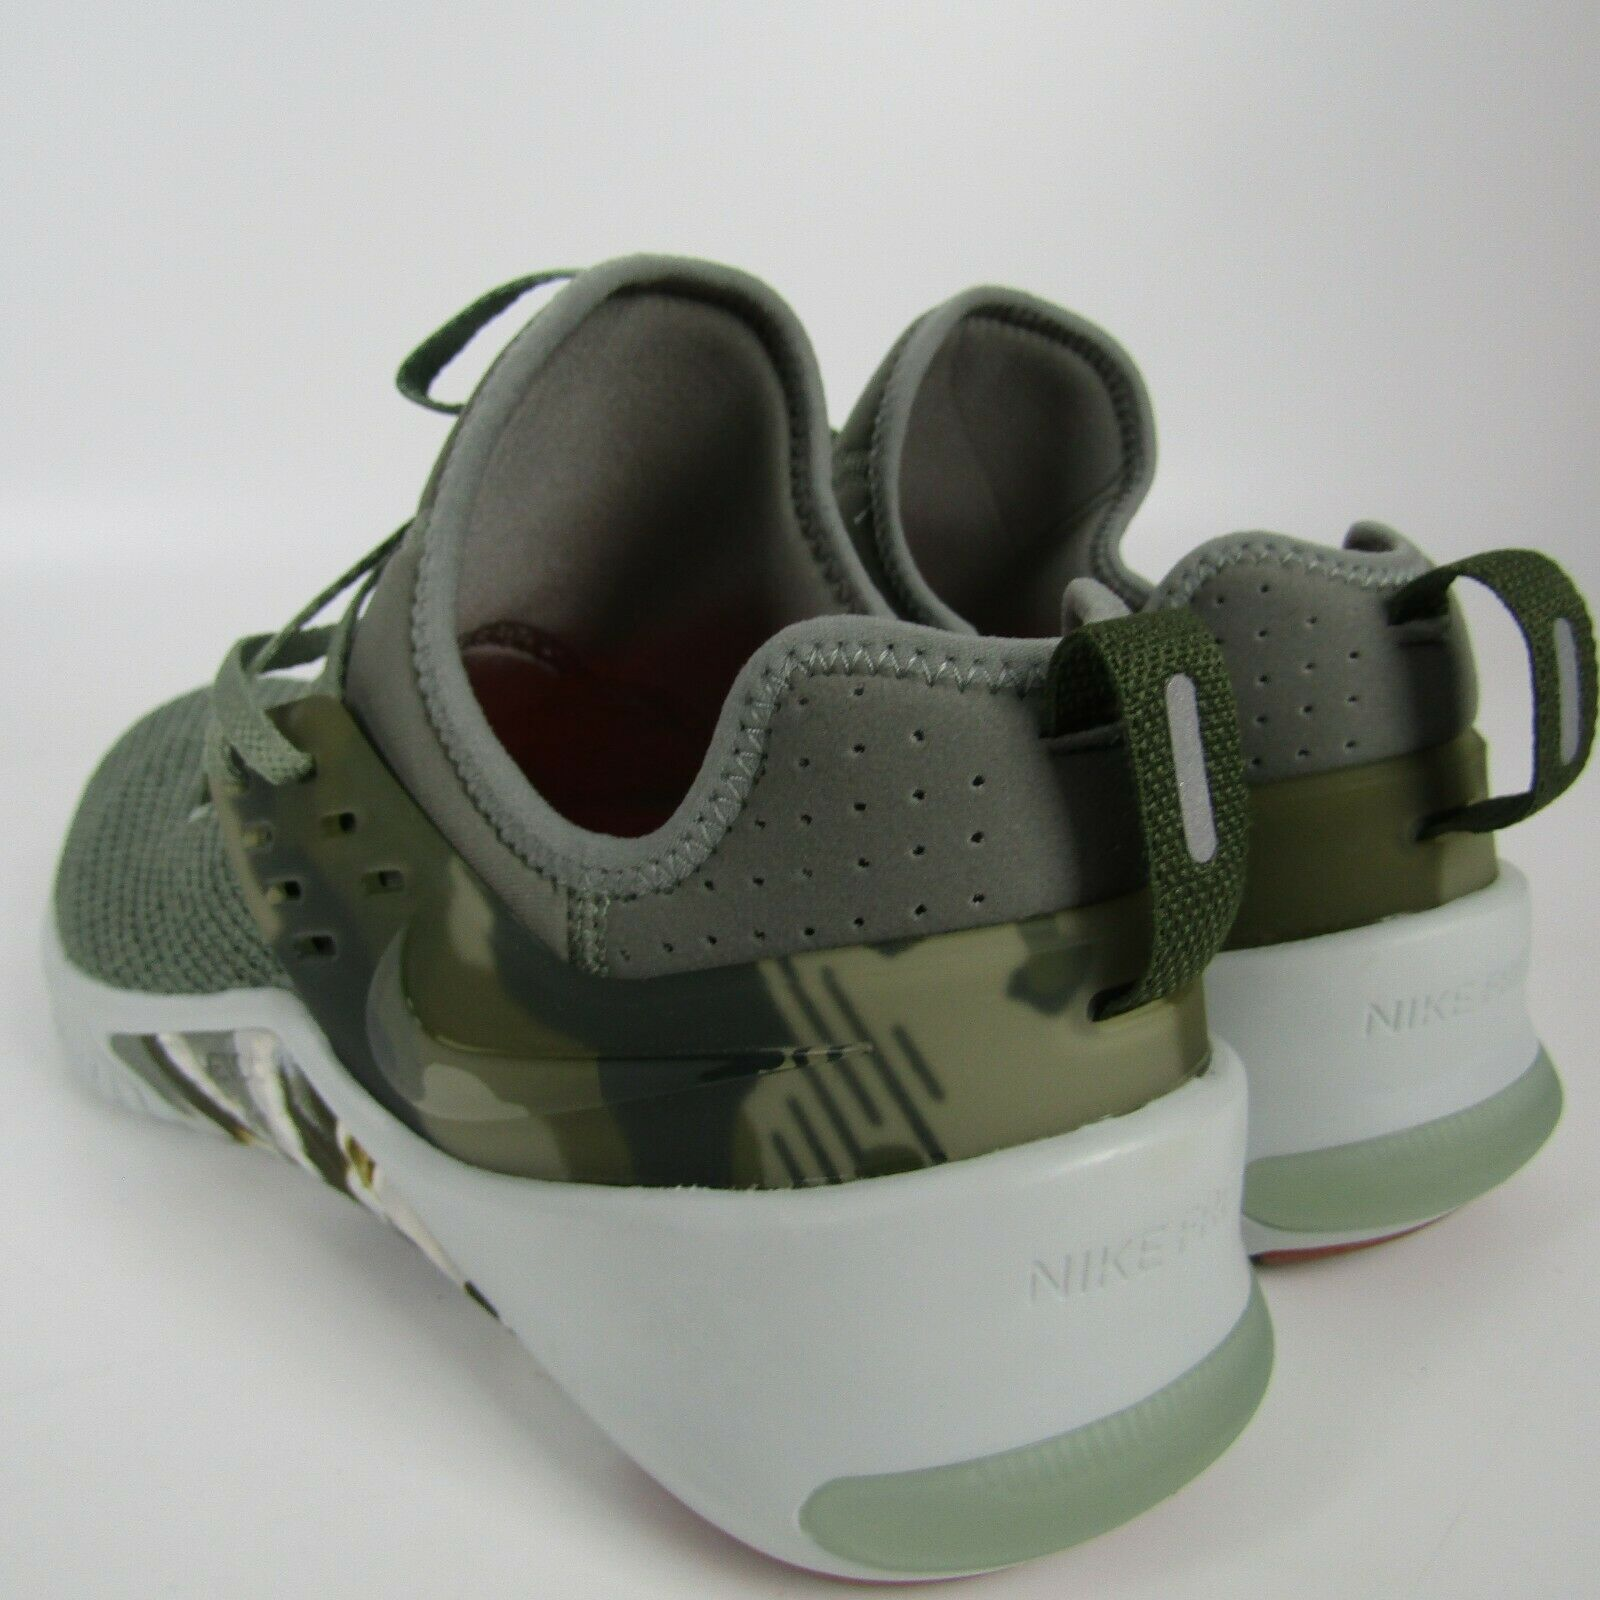 Mens Nike Free Metcon Running Shoes Size 11.5 Green Tan Camo AH8141 002 Trainer image 4